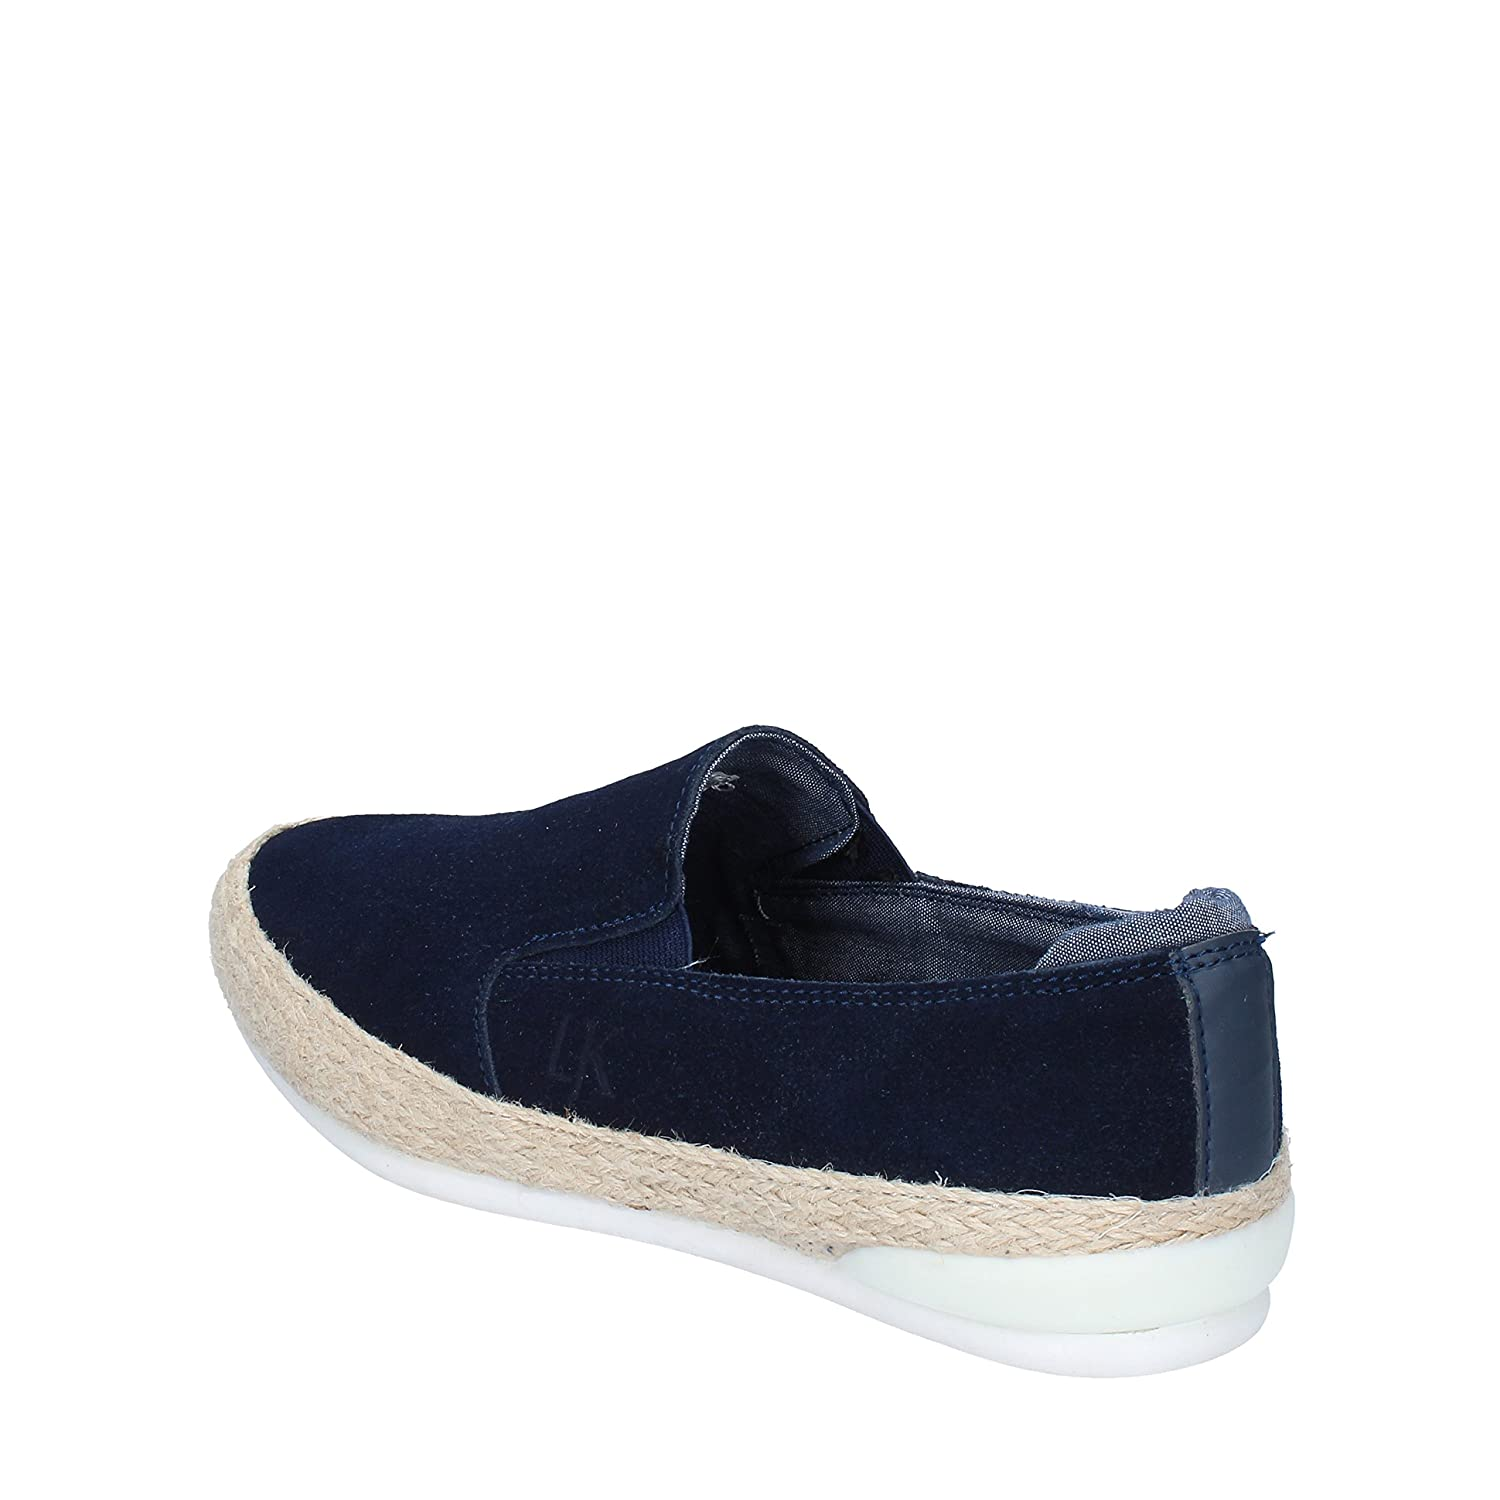 813ebb41b6d Lumberjack Loafers-Shoes Mens Suede Blue 6 UK  Amazon.co.uk  Shoes   Bags